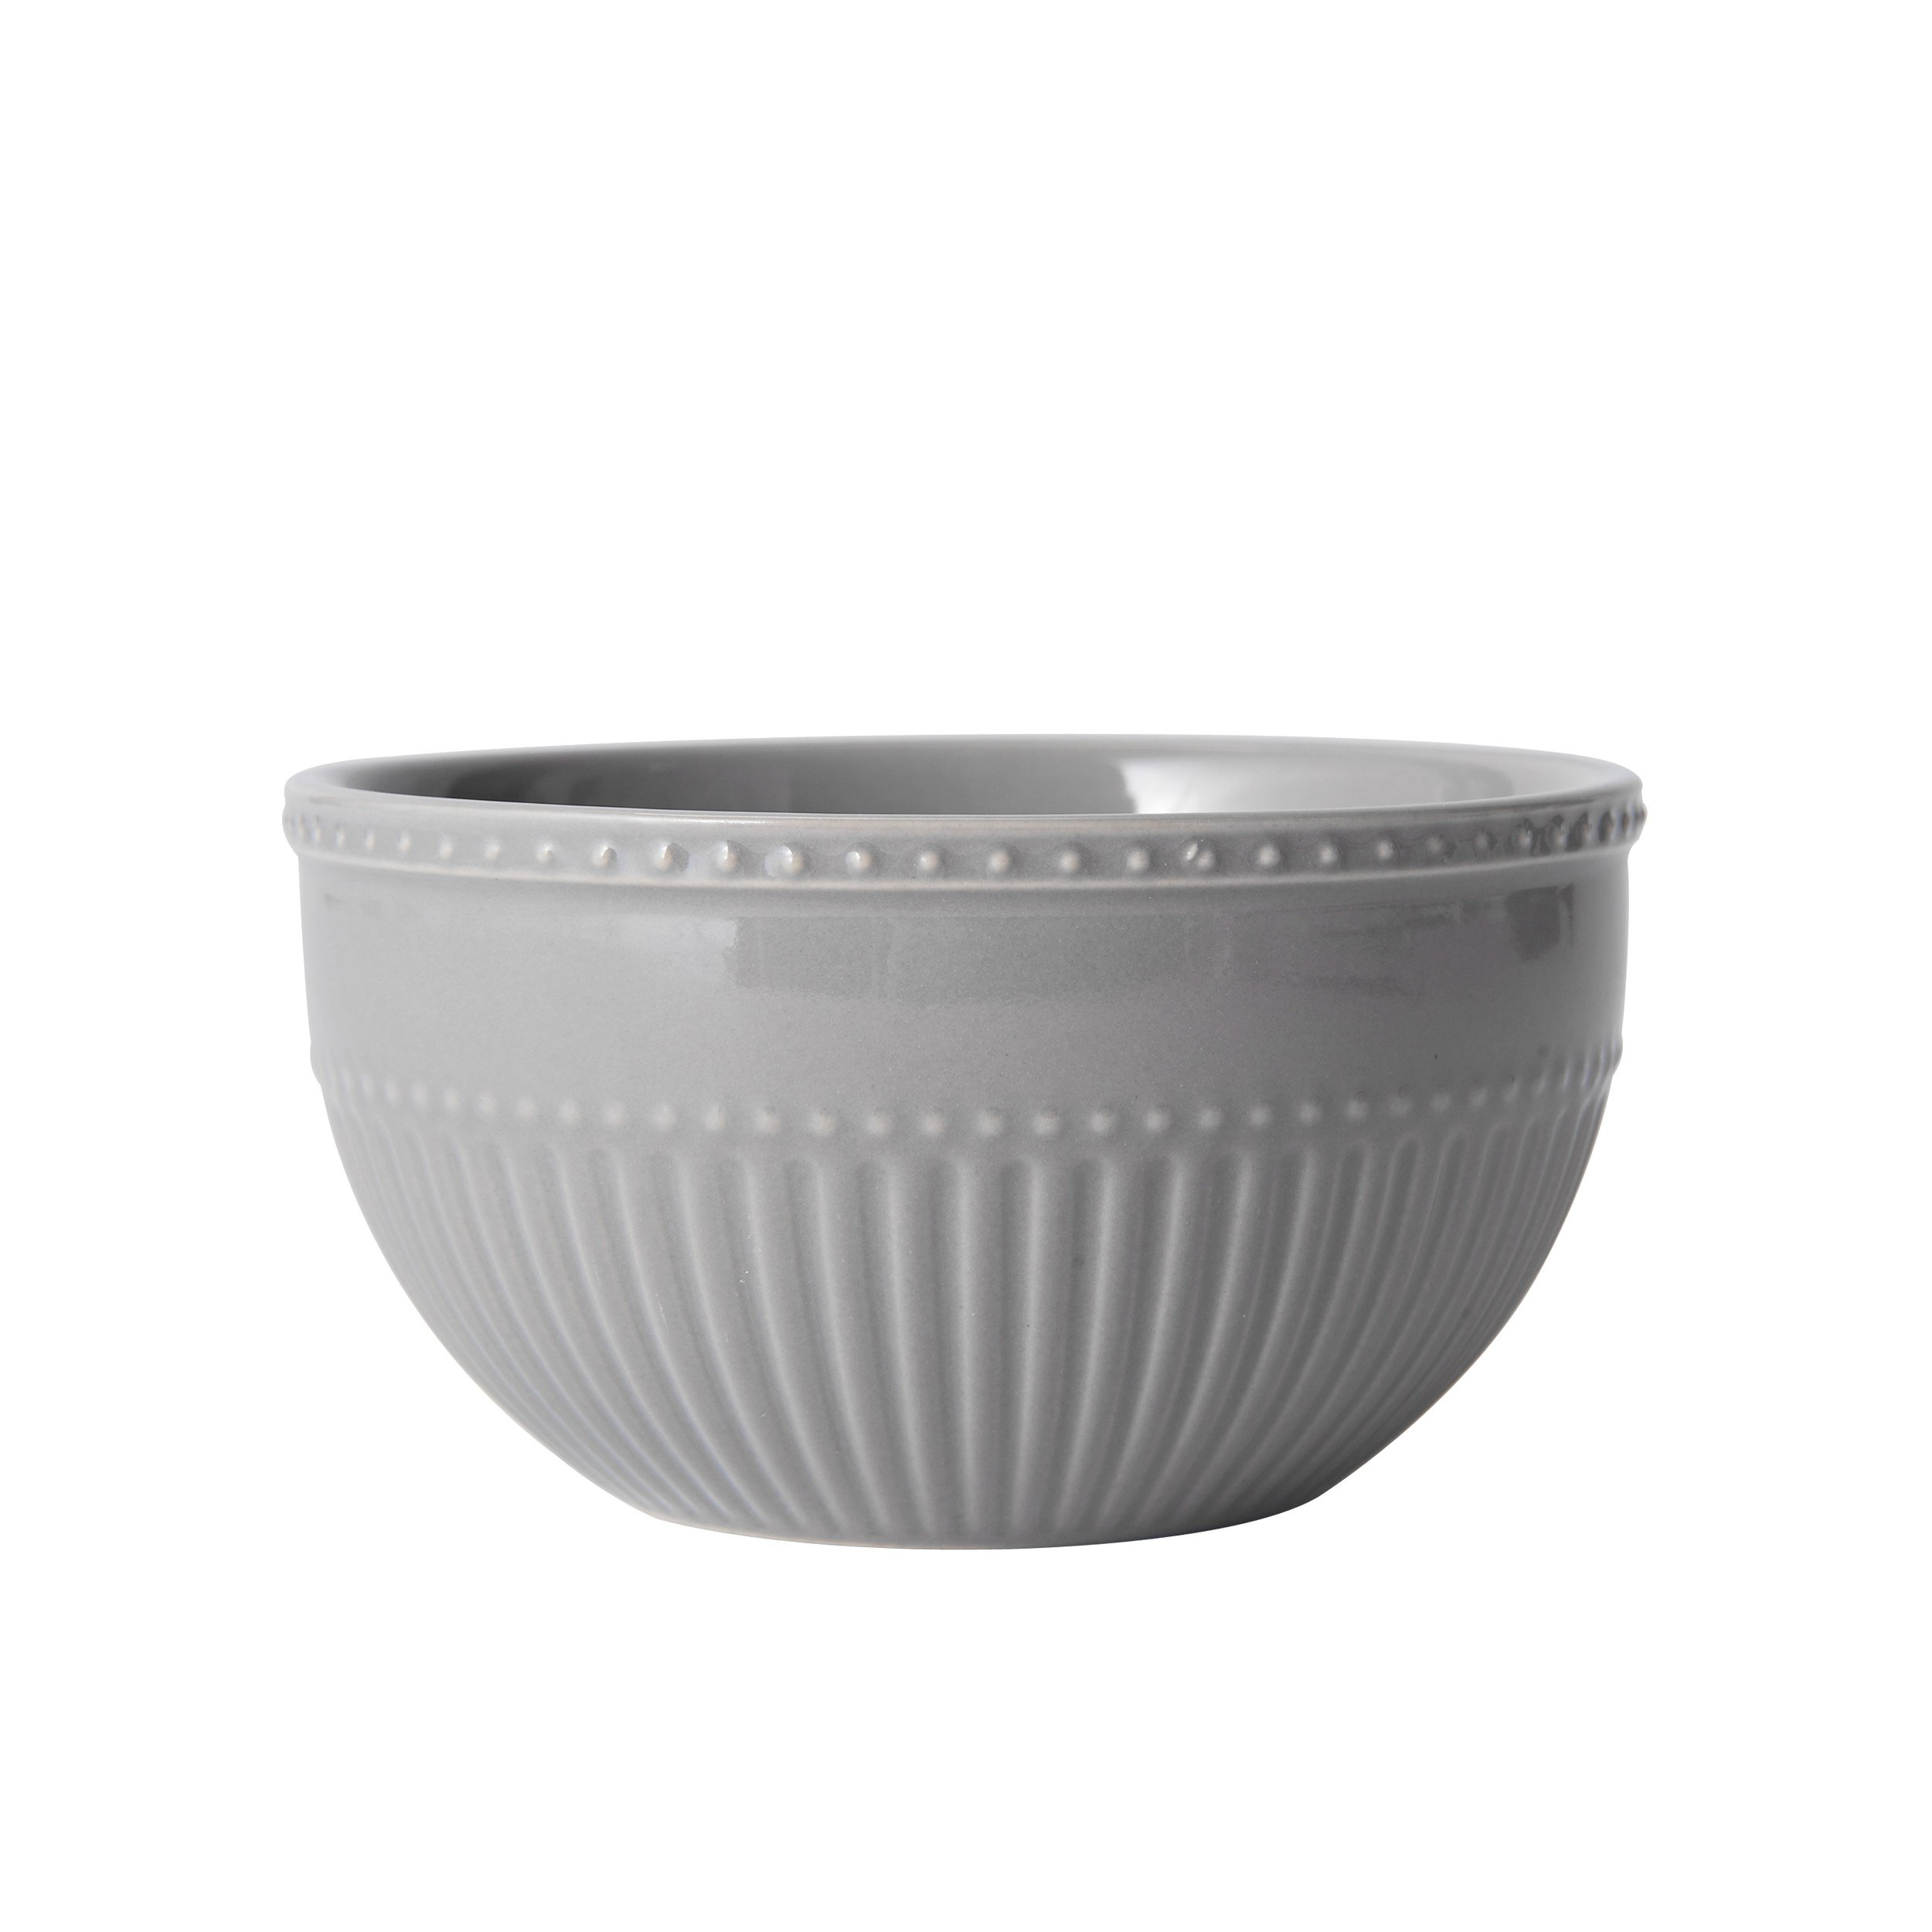 Mikasa Italian Countryside Accents Fruit Bowl, Fluted Grey